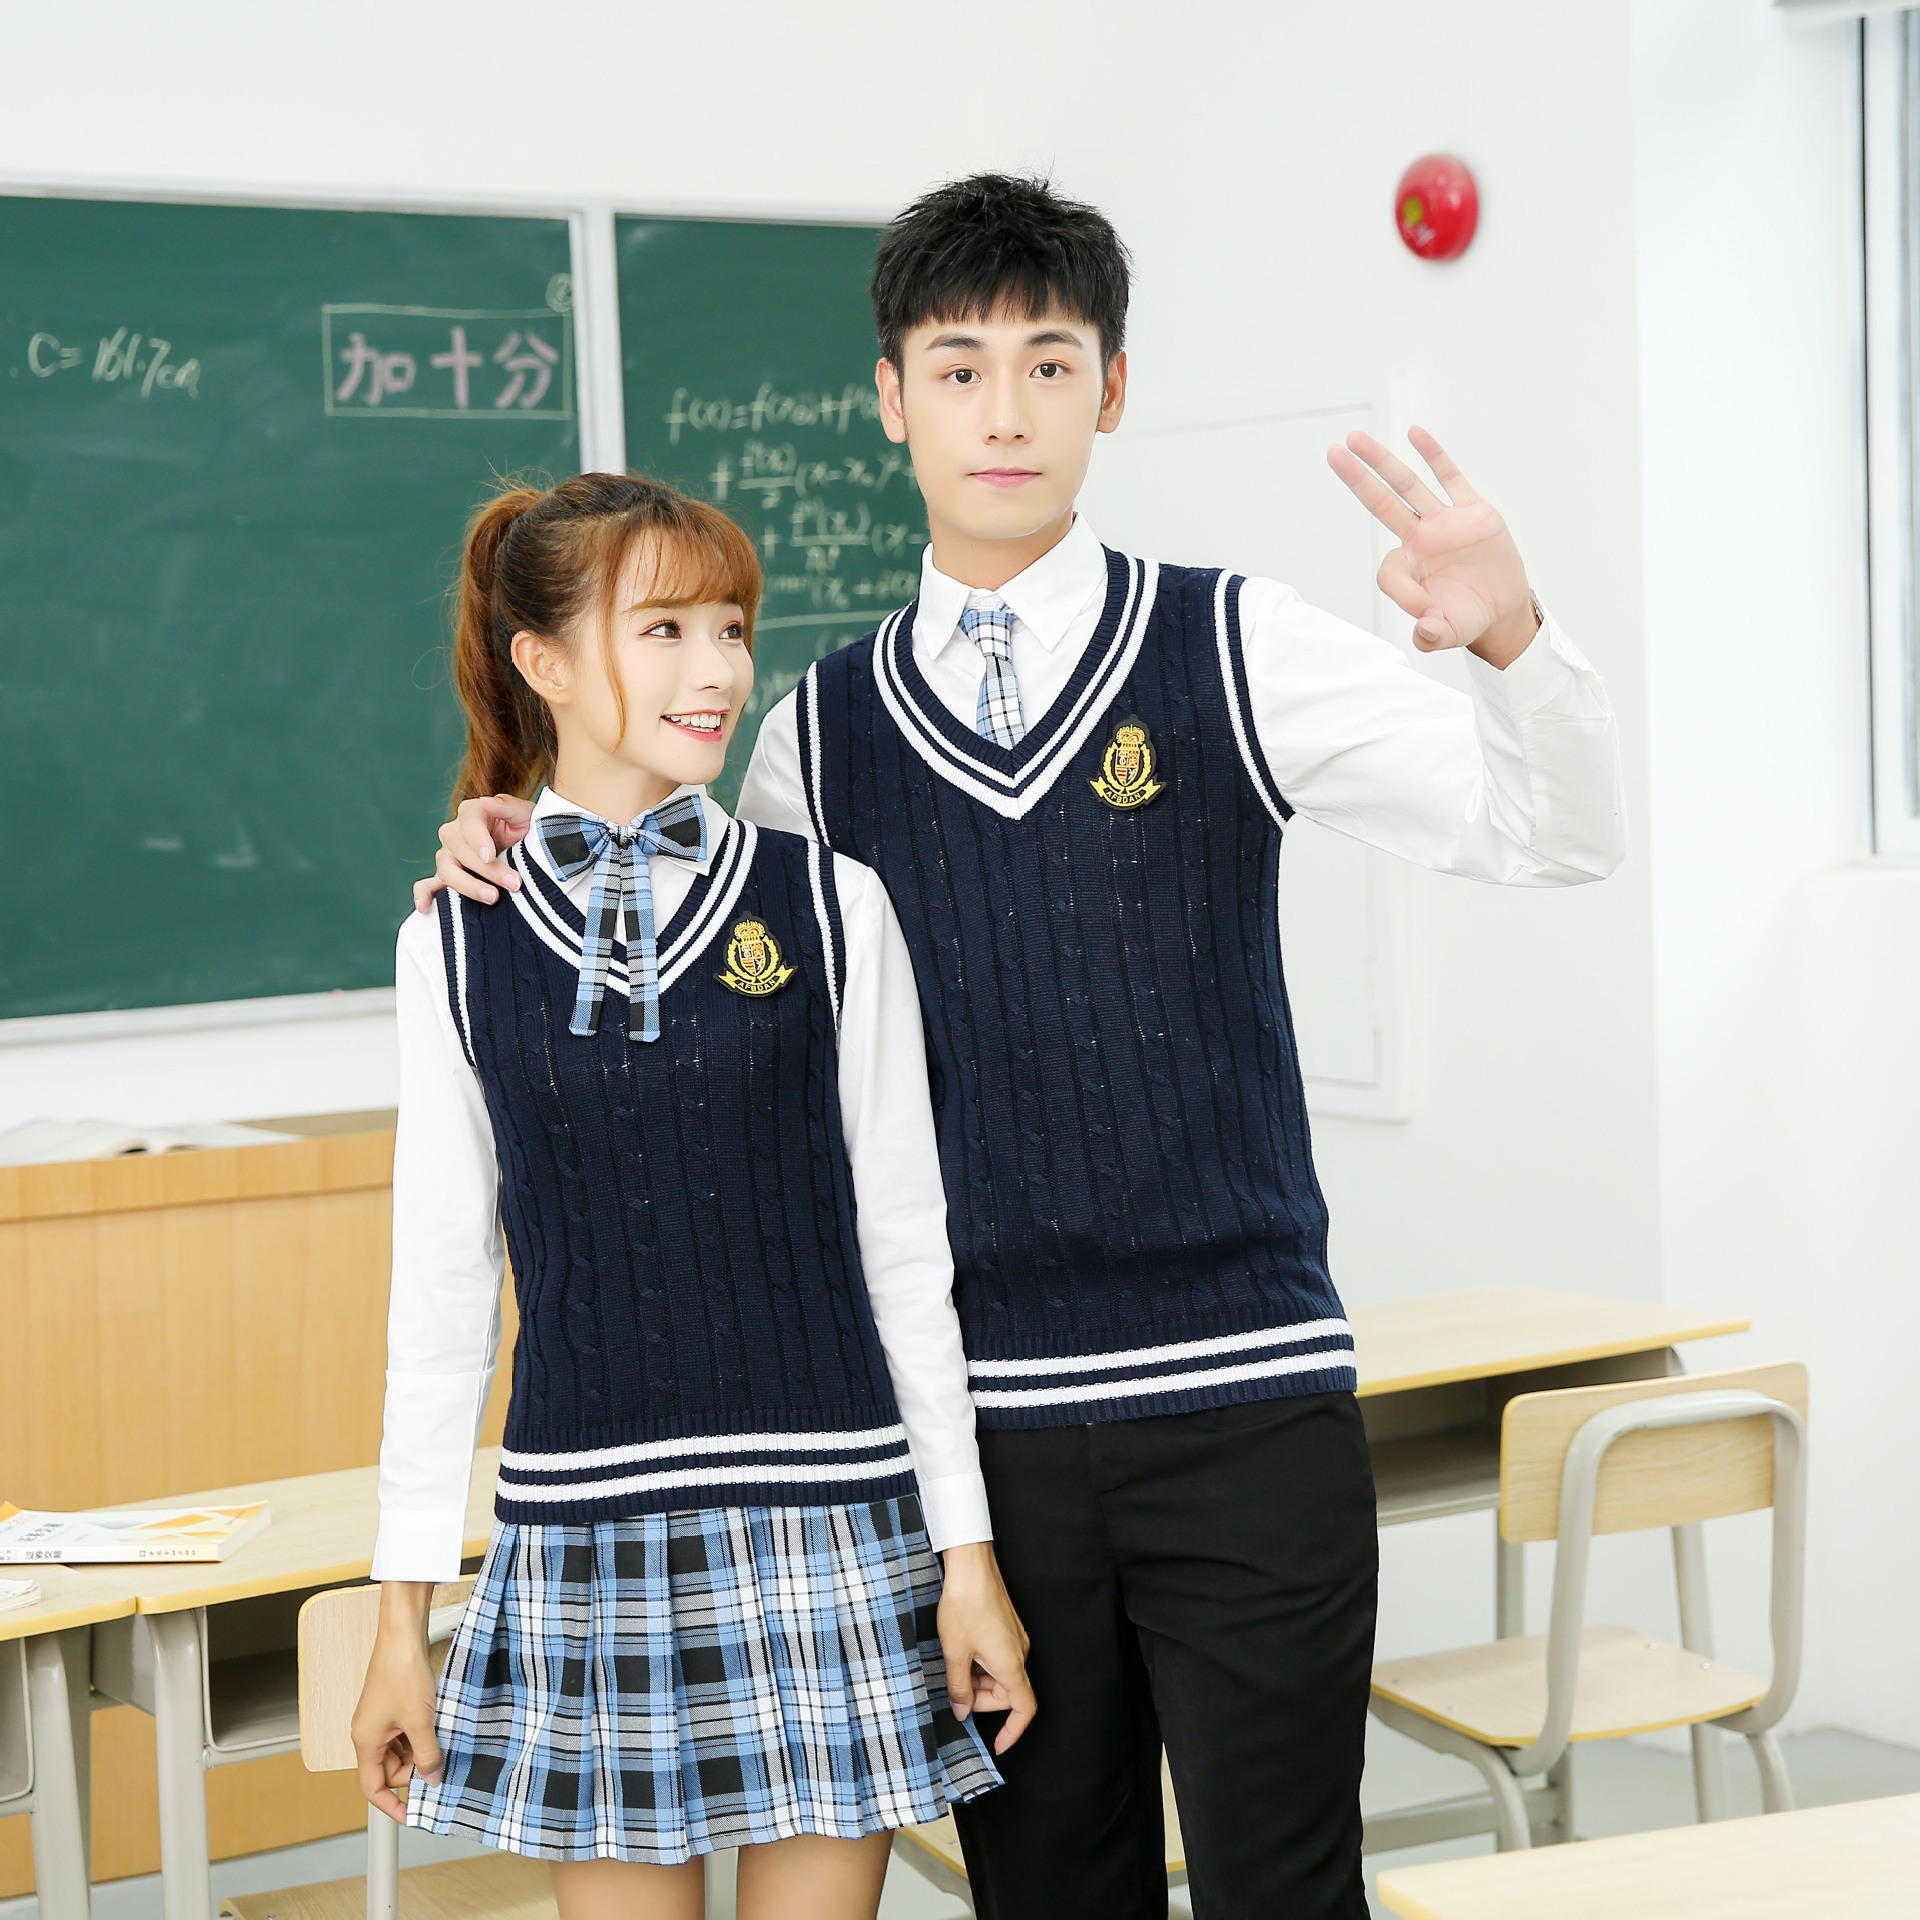 Y902  Boys And Girls White Shirts Knitted Vests Skirts Pants Middle School Uniforms